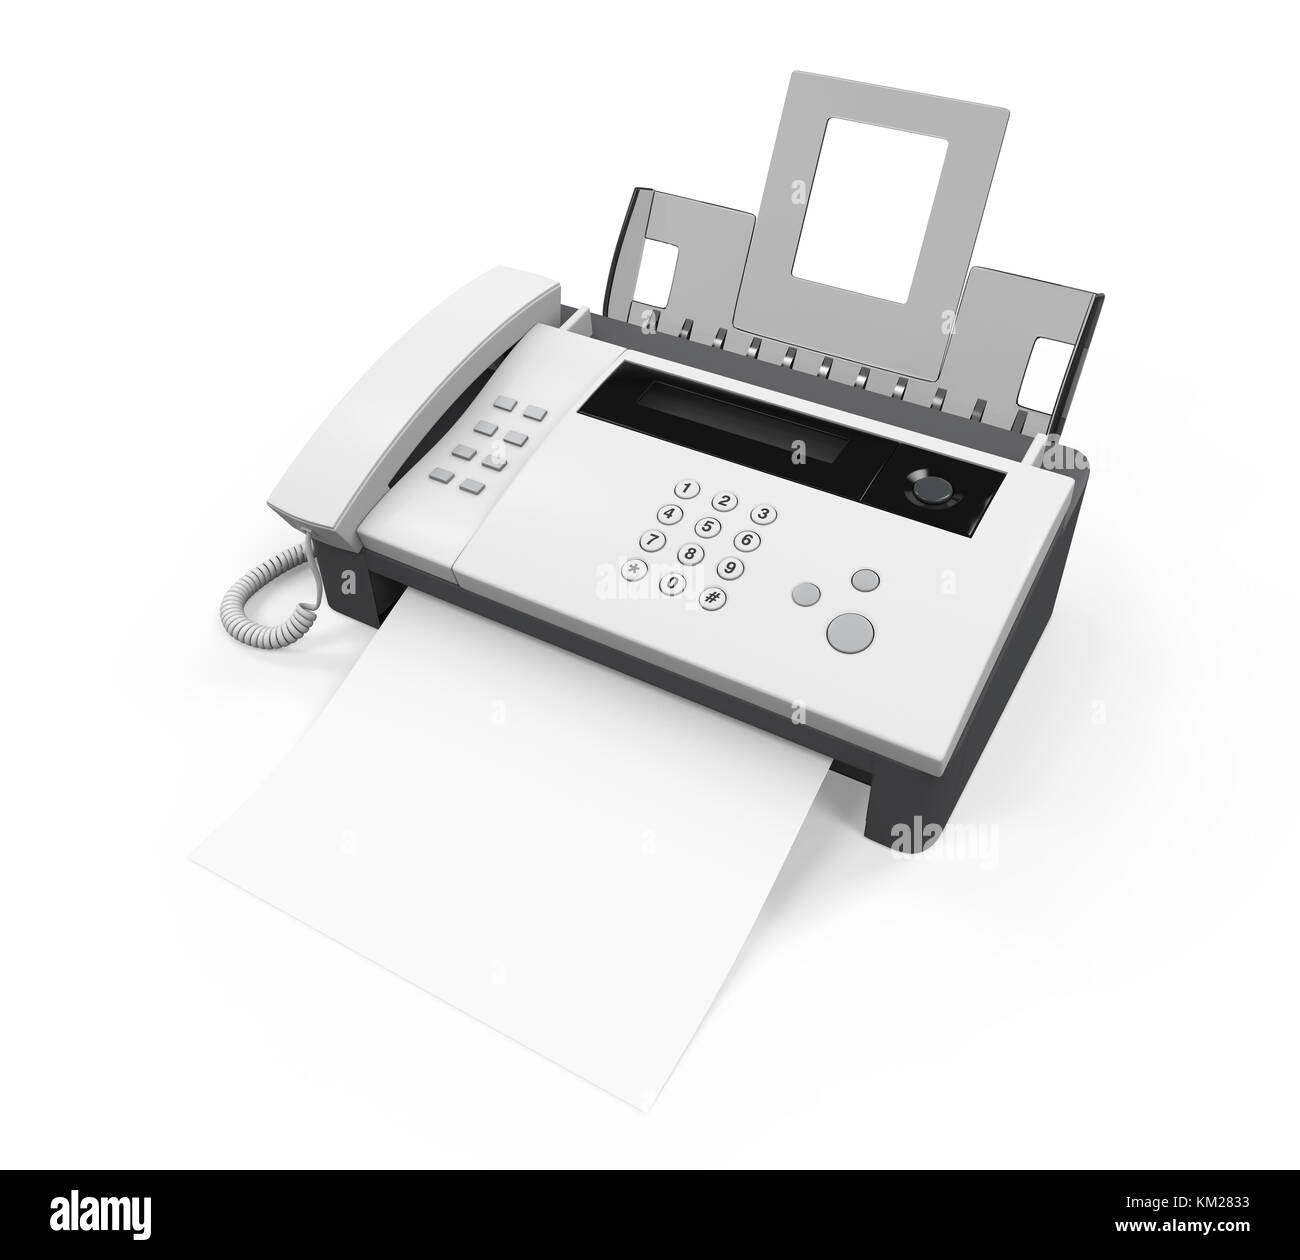 essays of fax machine Fax machines are usually trouble-free the best way to keep your fax machine or scanner in top condition is to service it periodically, as recommended by the manufacturer use good paper that doesn't leave a residue or film and use the appropriate ink cartridges a fax scans paper images and then .